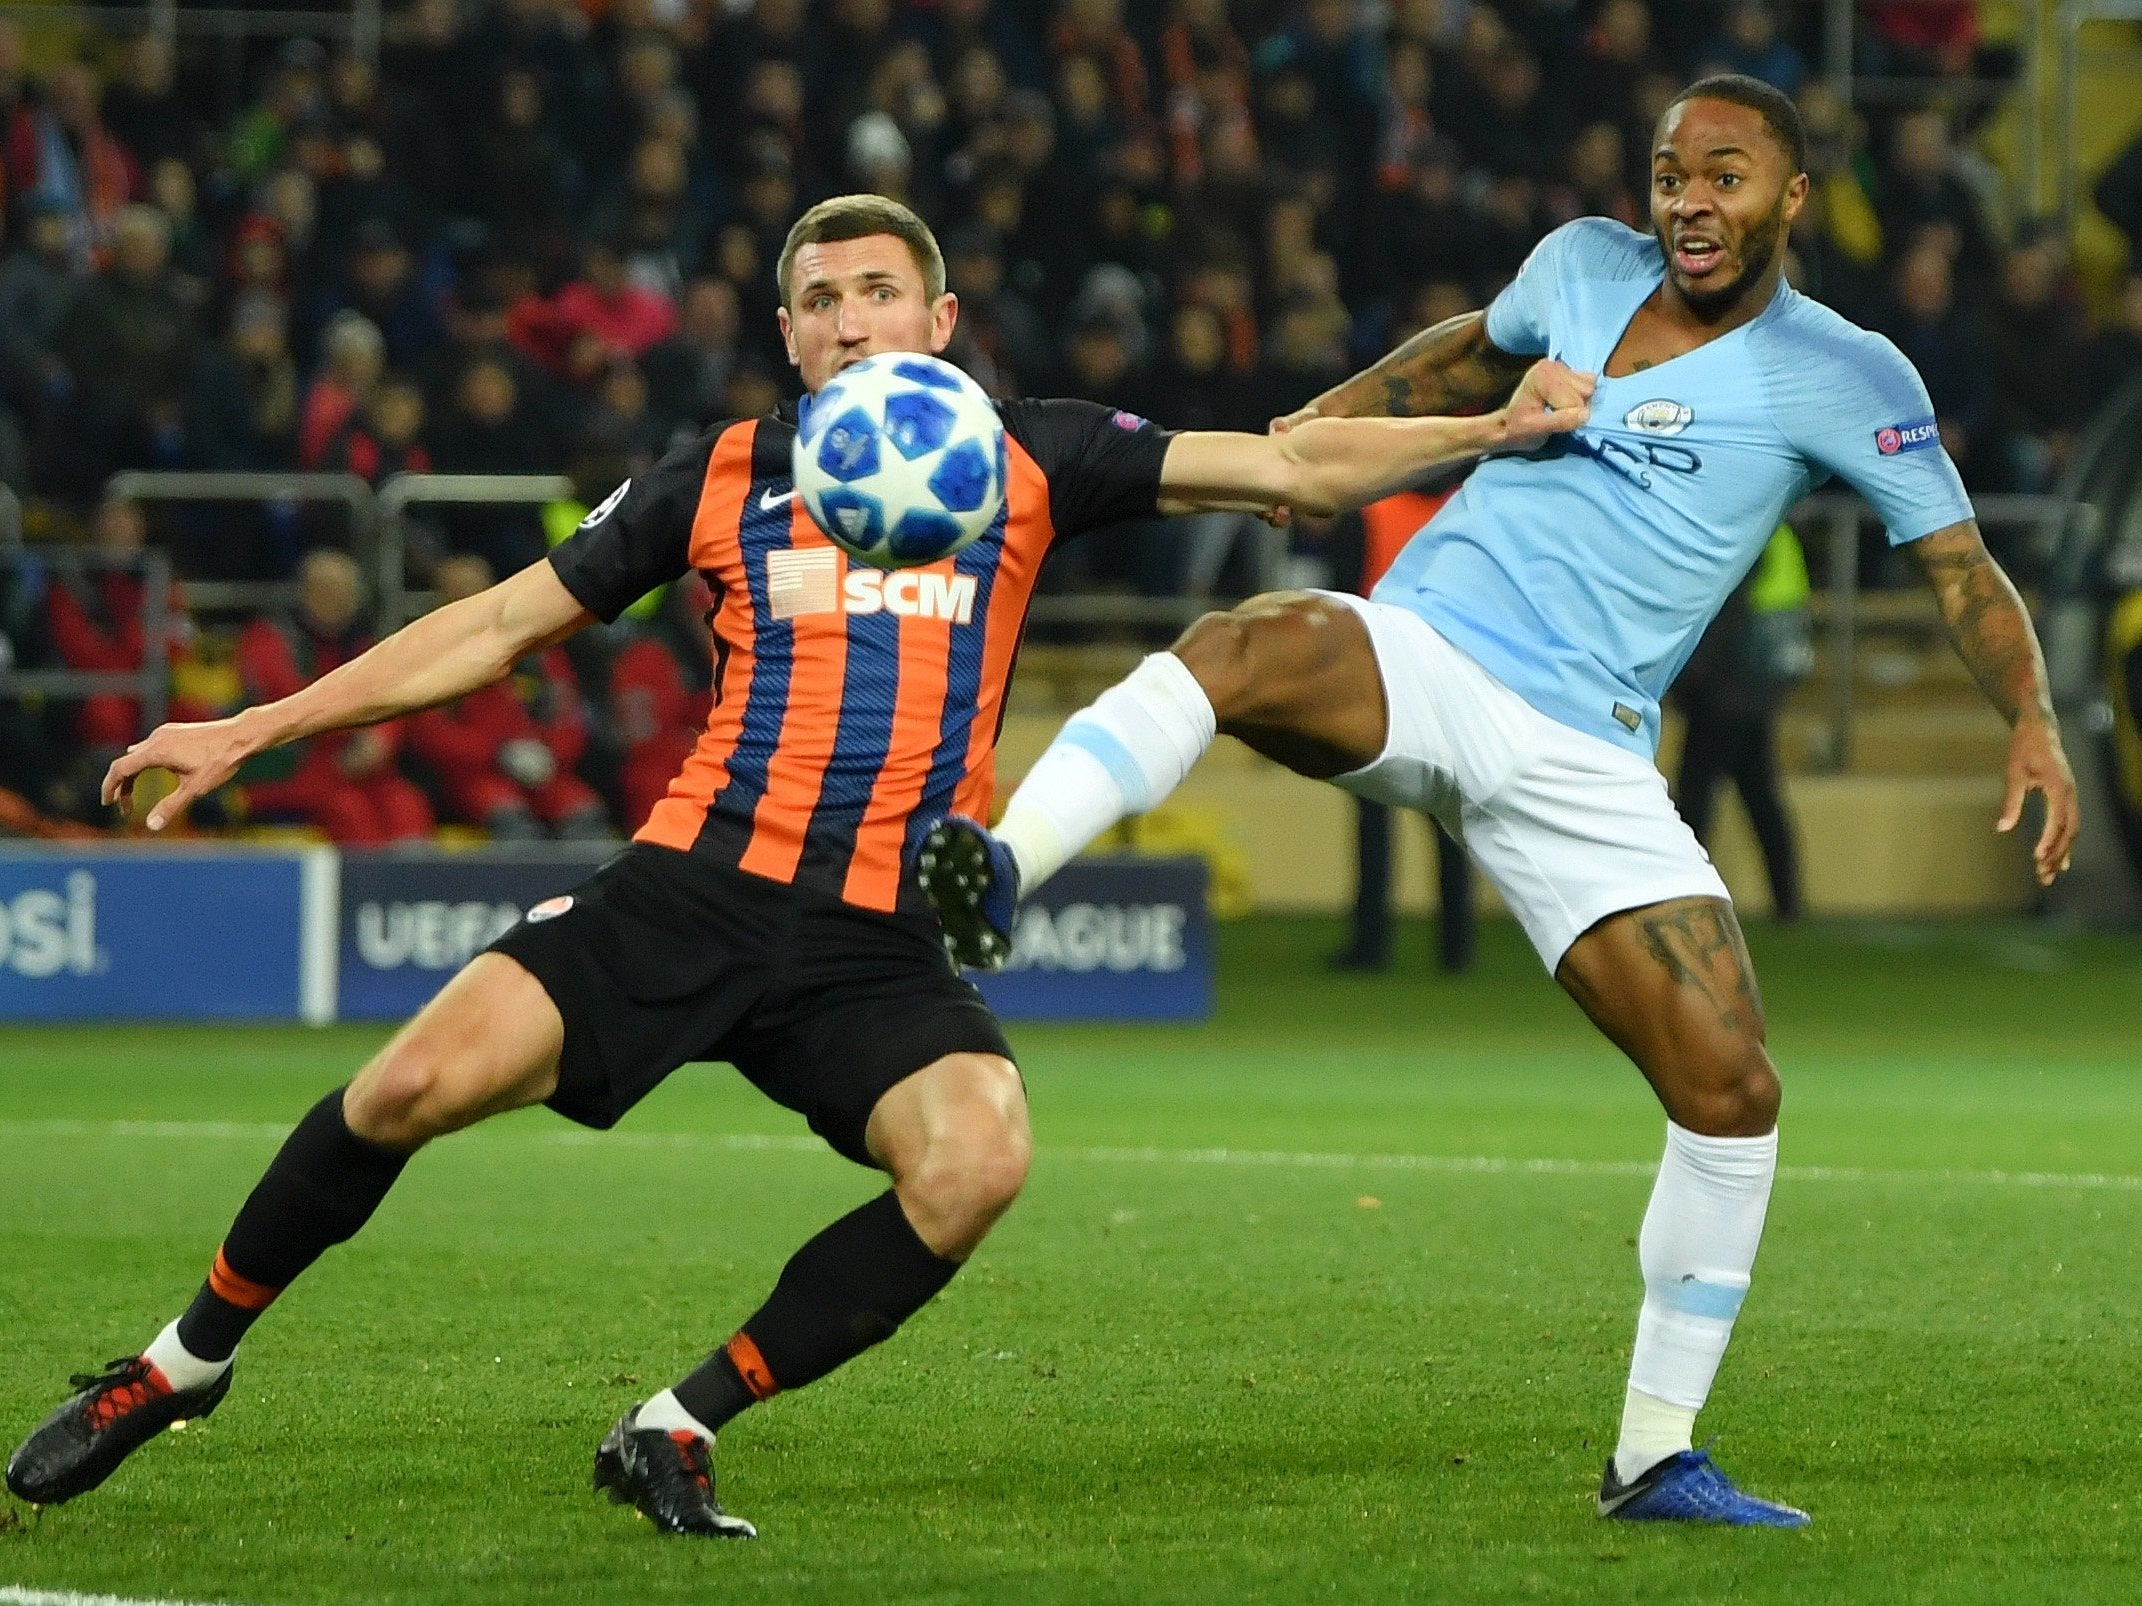 Manchester City - latest news, breaking stories and comment